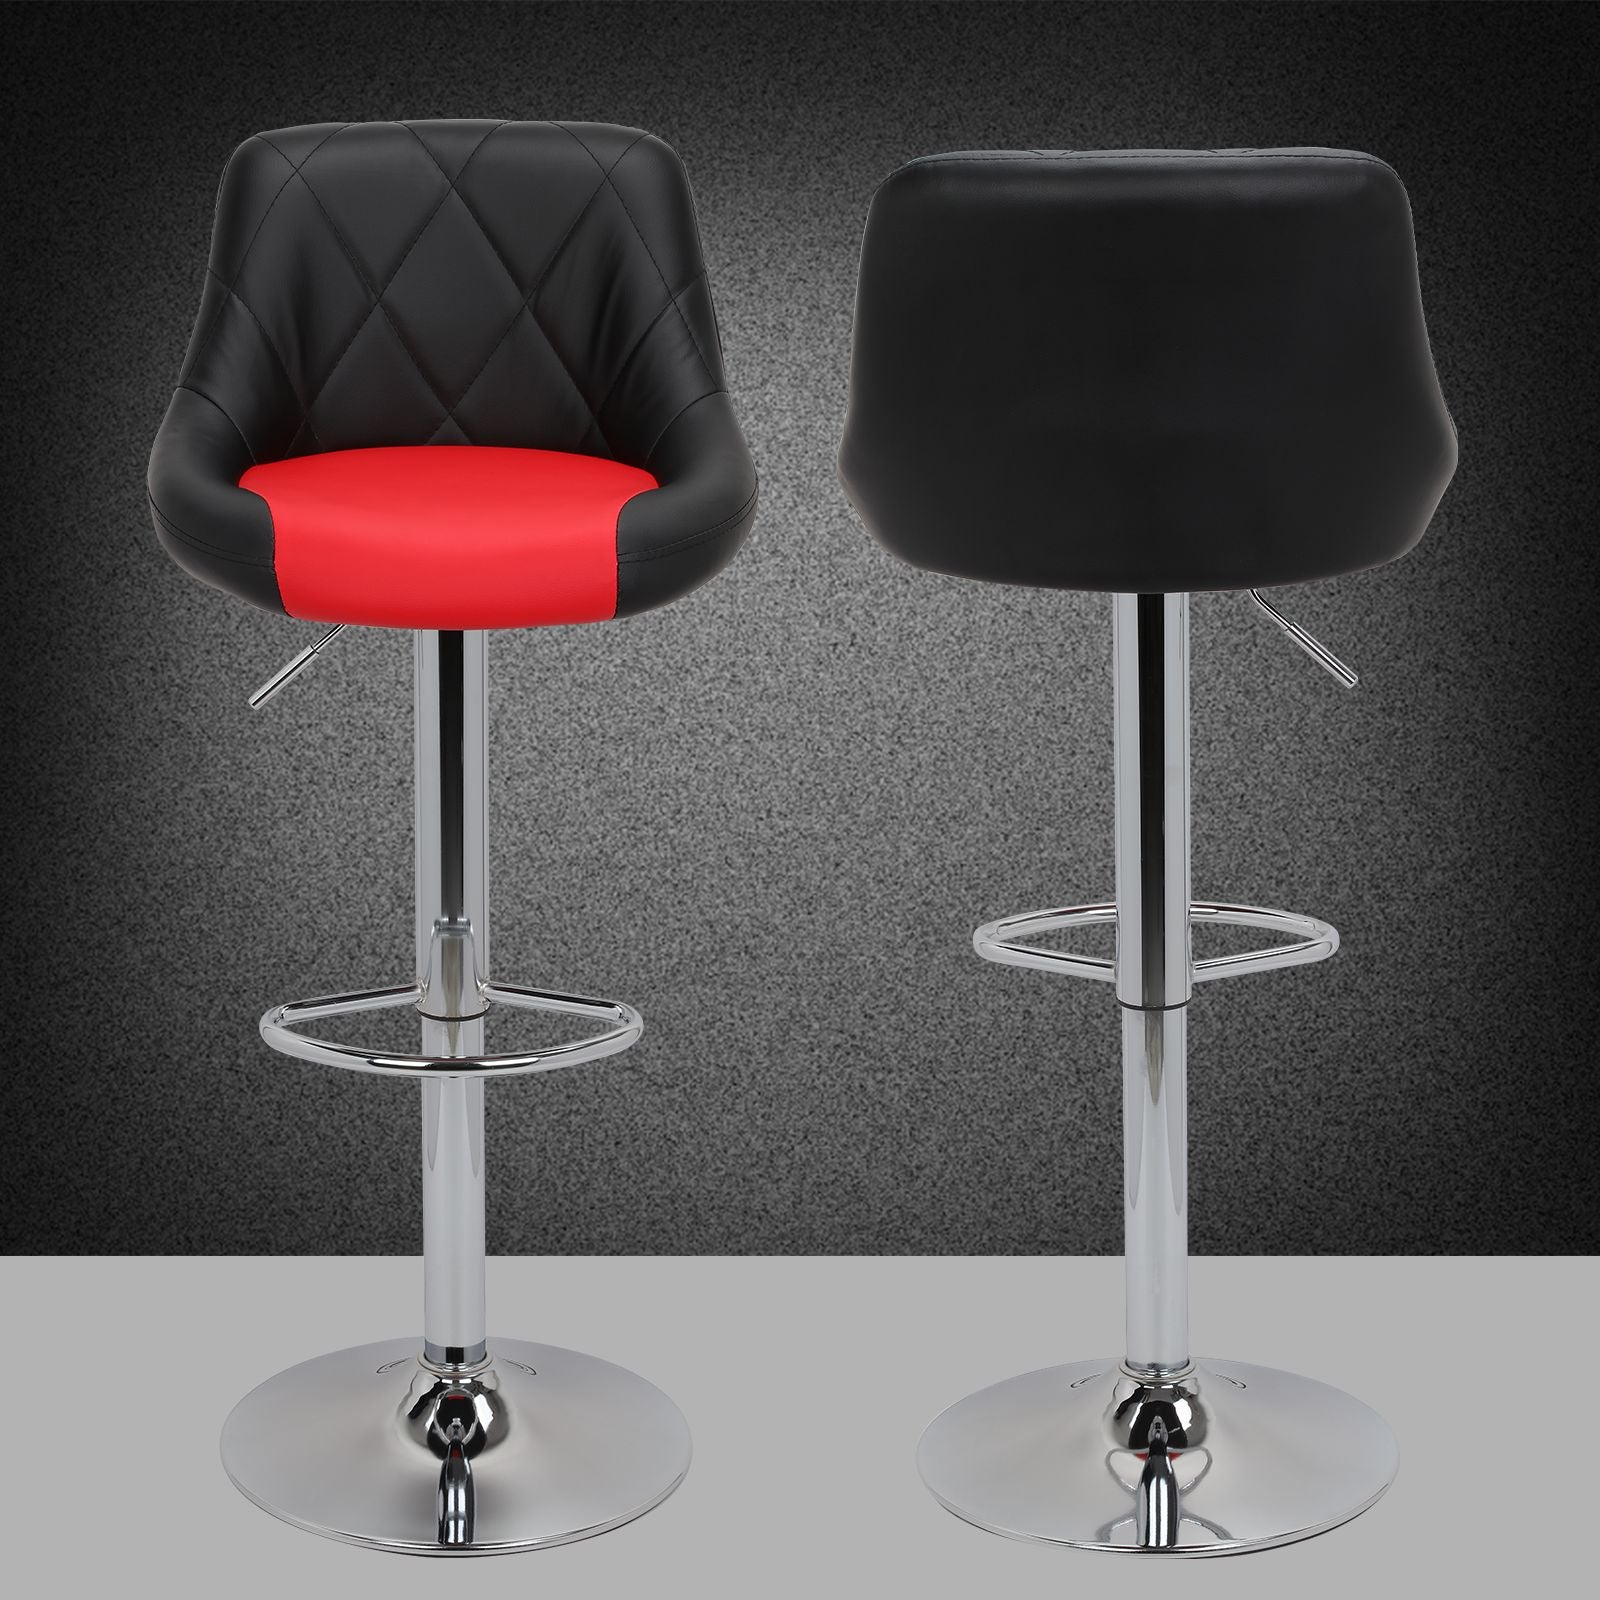 2pc Modern Counter Stools Pub Bar Stools with Backs Kitchen Stools Silver Red White Black